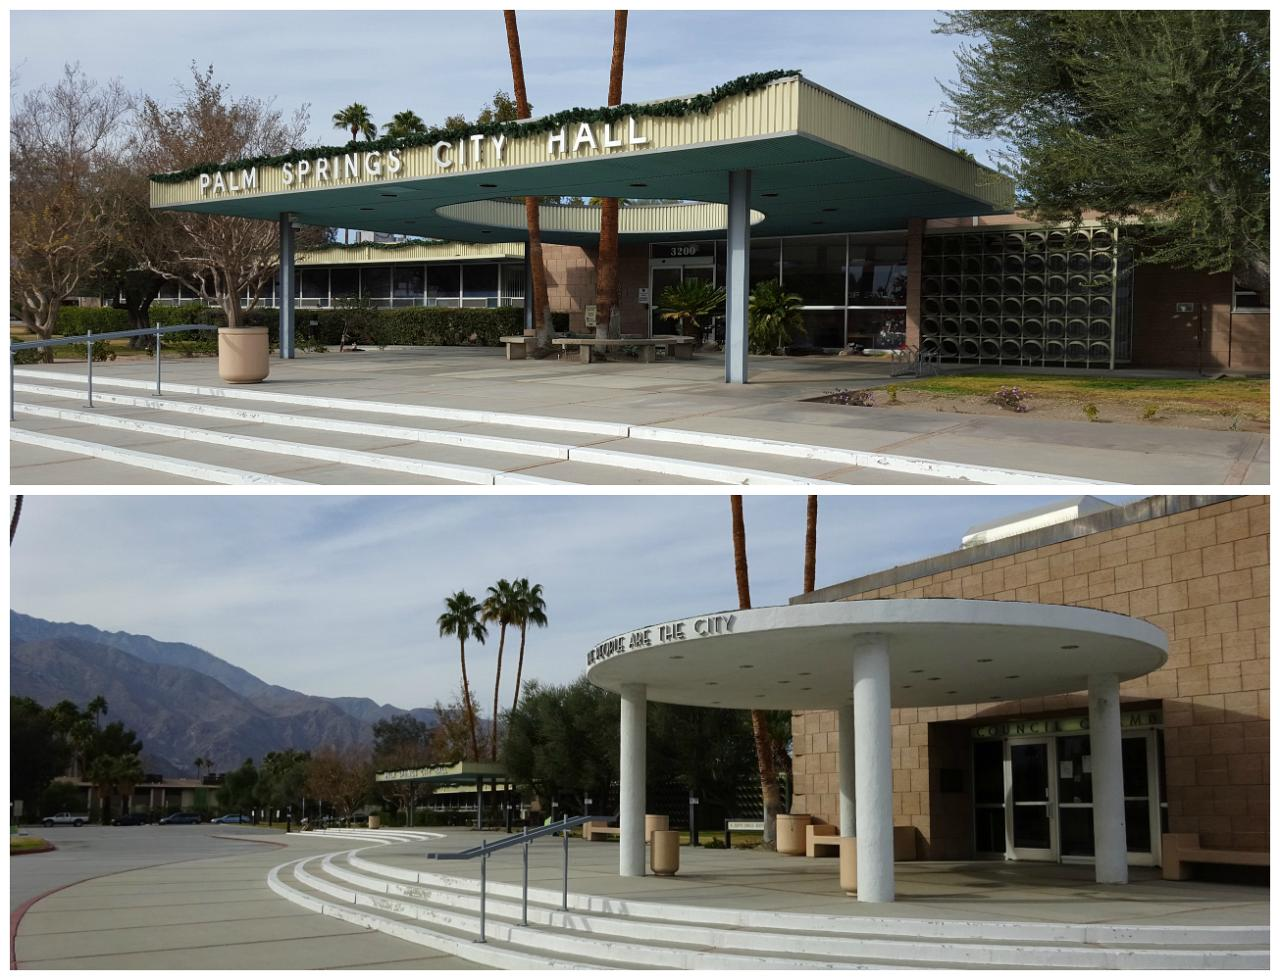 Palm Springs City Hall entrance and council chamger